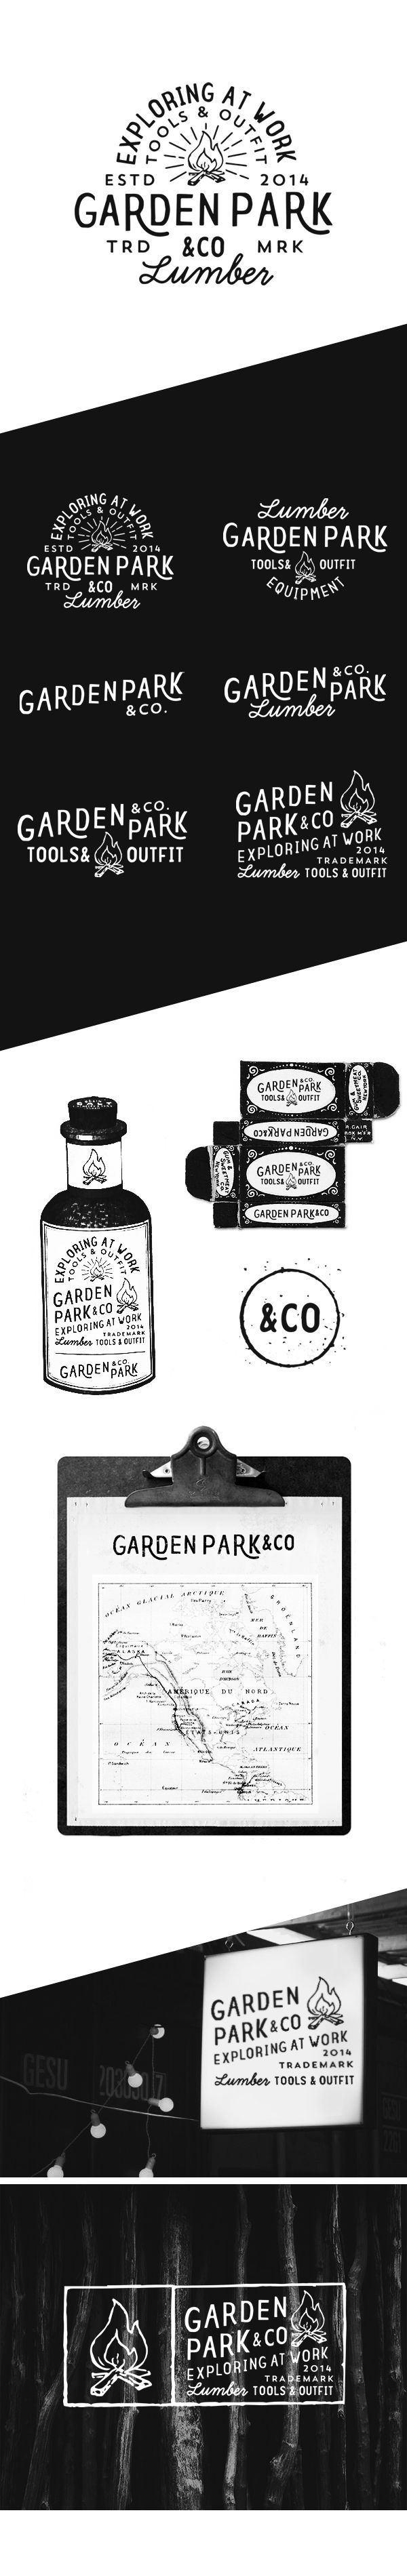 Garden Park & Co on Behance